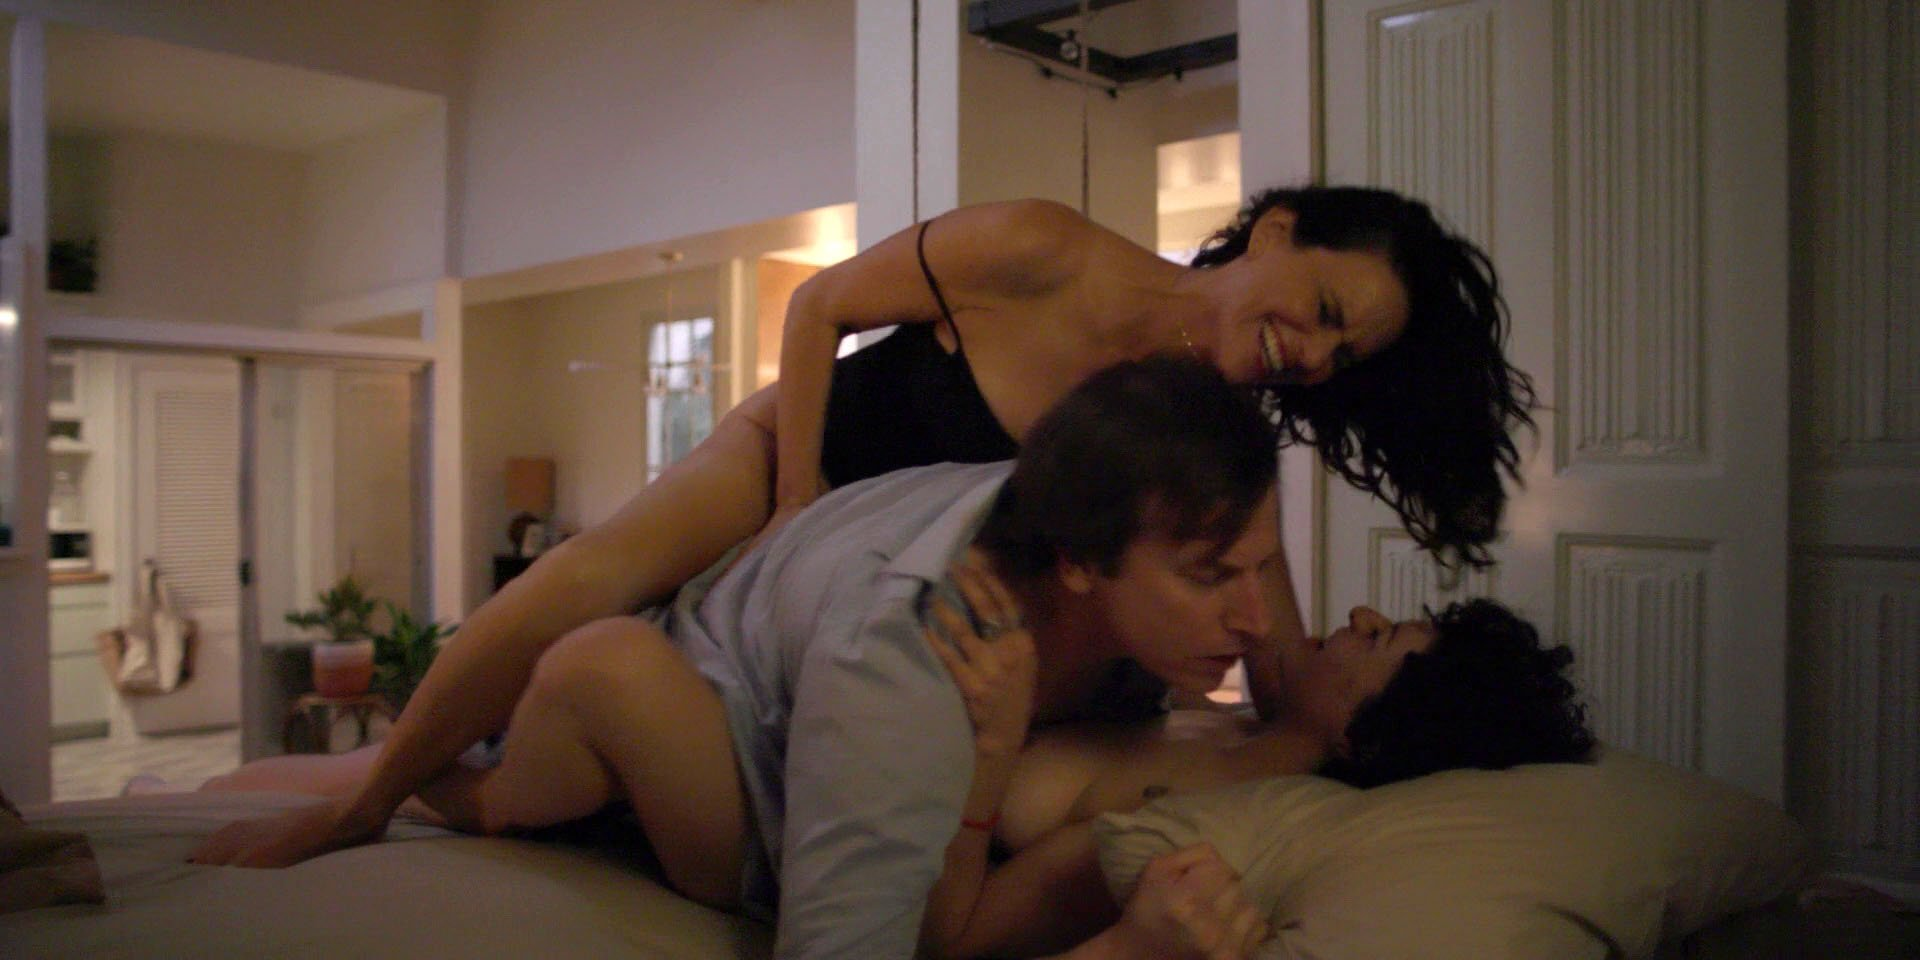 Hot threesome with asia carrera in action with a horny couple - 3 4